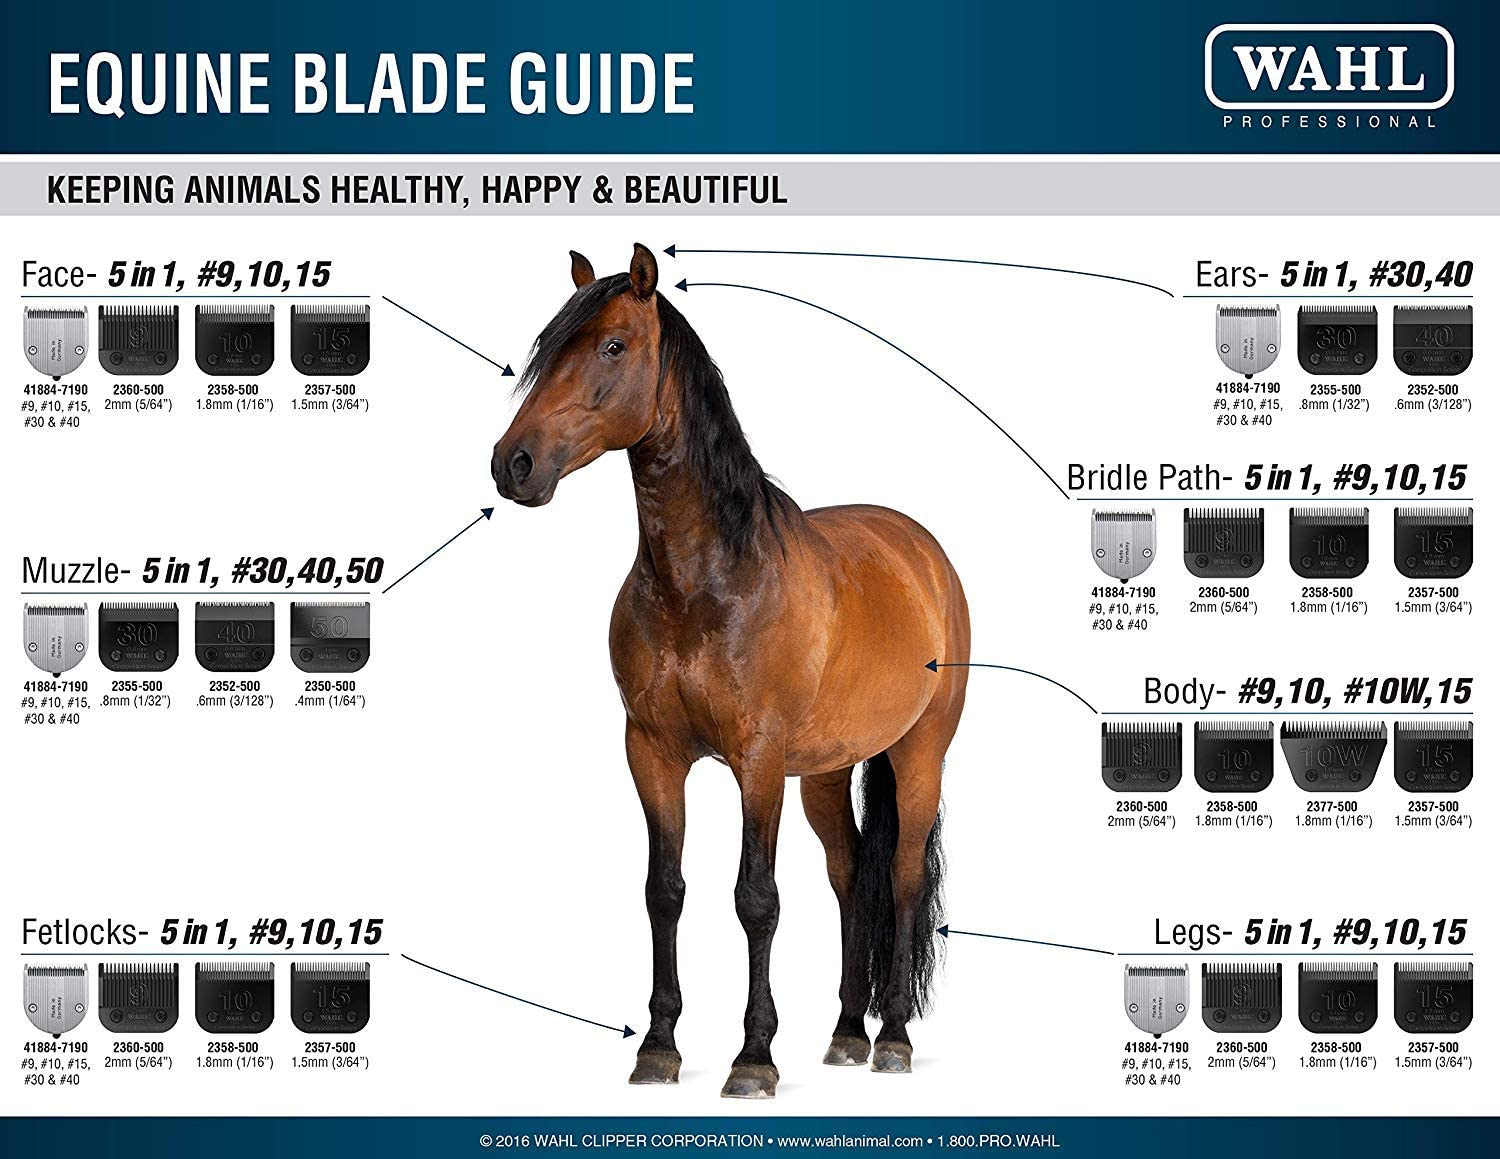 Wahl Professional Clippers - Best Clippers for Horses Legs